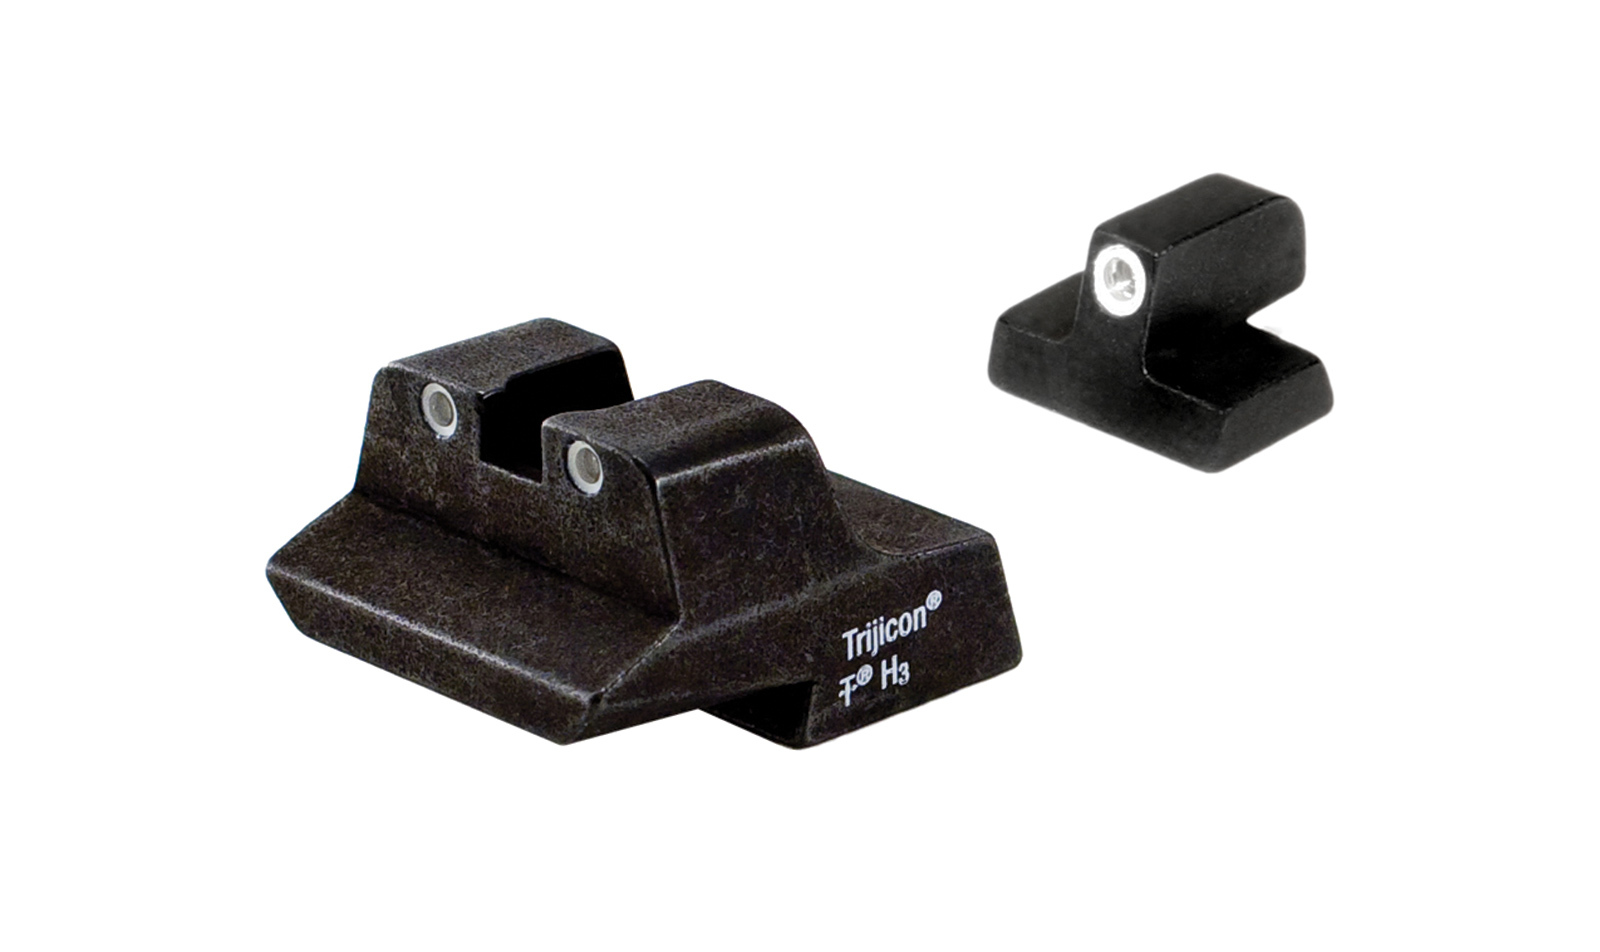 Trijicon Bright & Tought Night Sights - Smith & Wesson 4506, 4526, 4546, 4566, 4576, and 4586